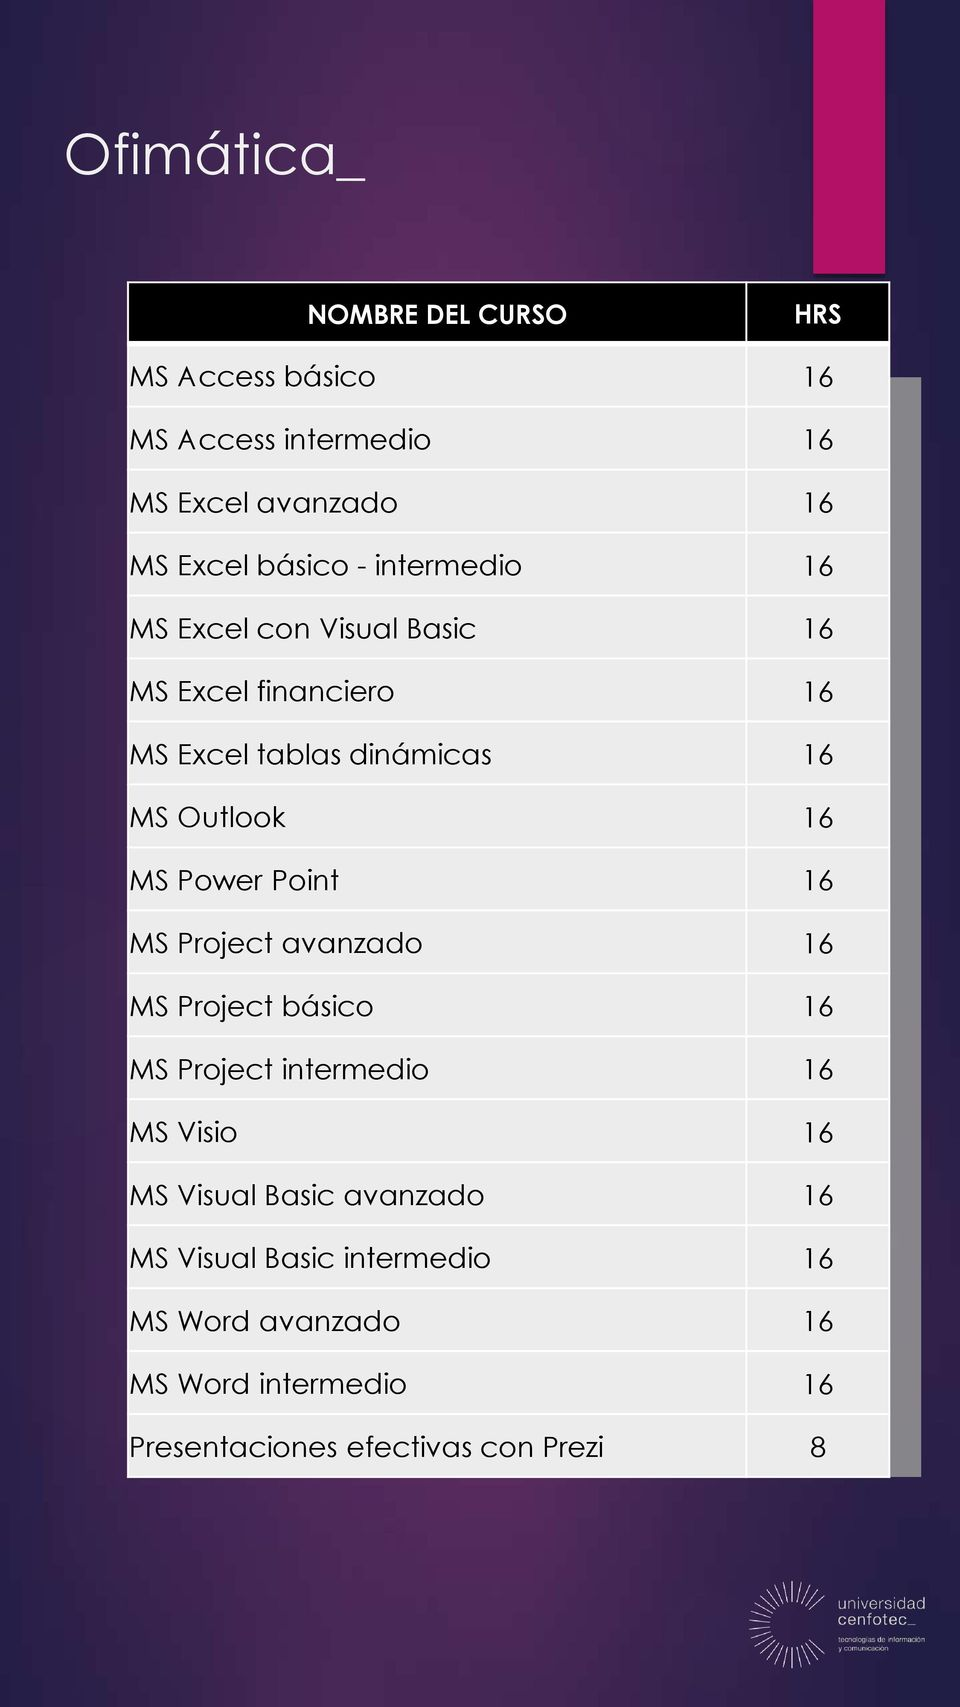 Power Point 16 MS Project avanzado 16 MS Project básico 16 MS Project intermedio 16 MS Visio 16 MS Visual Basic